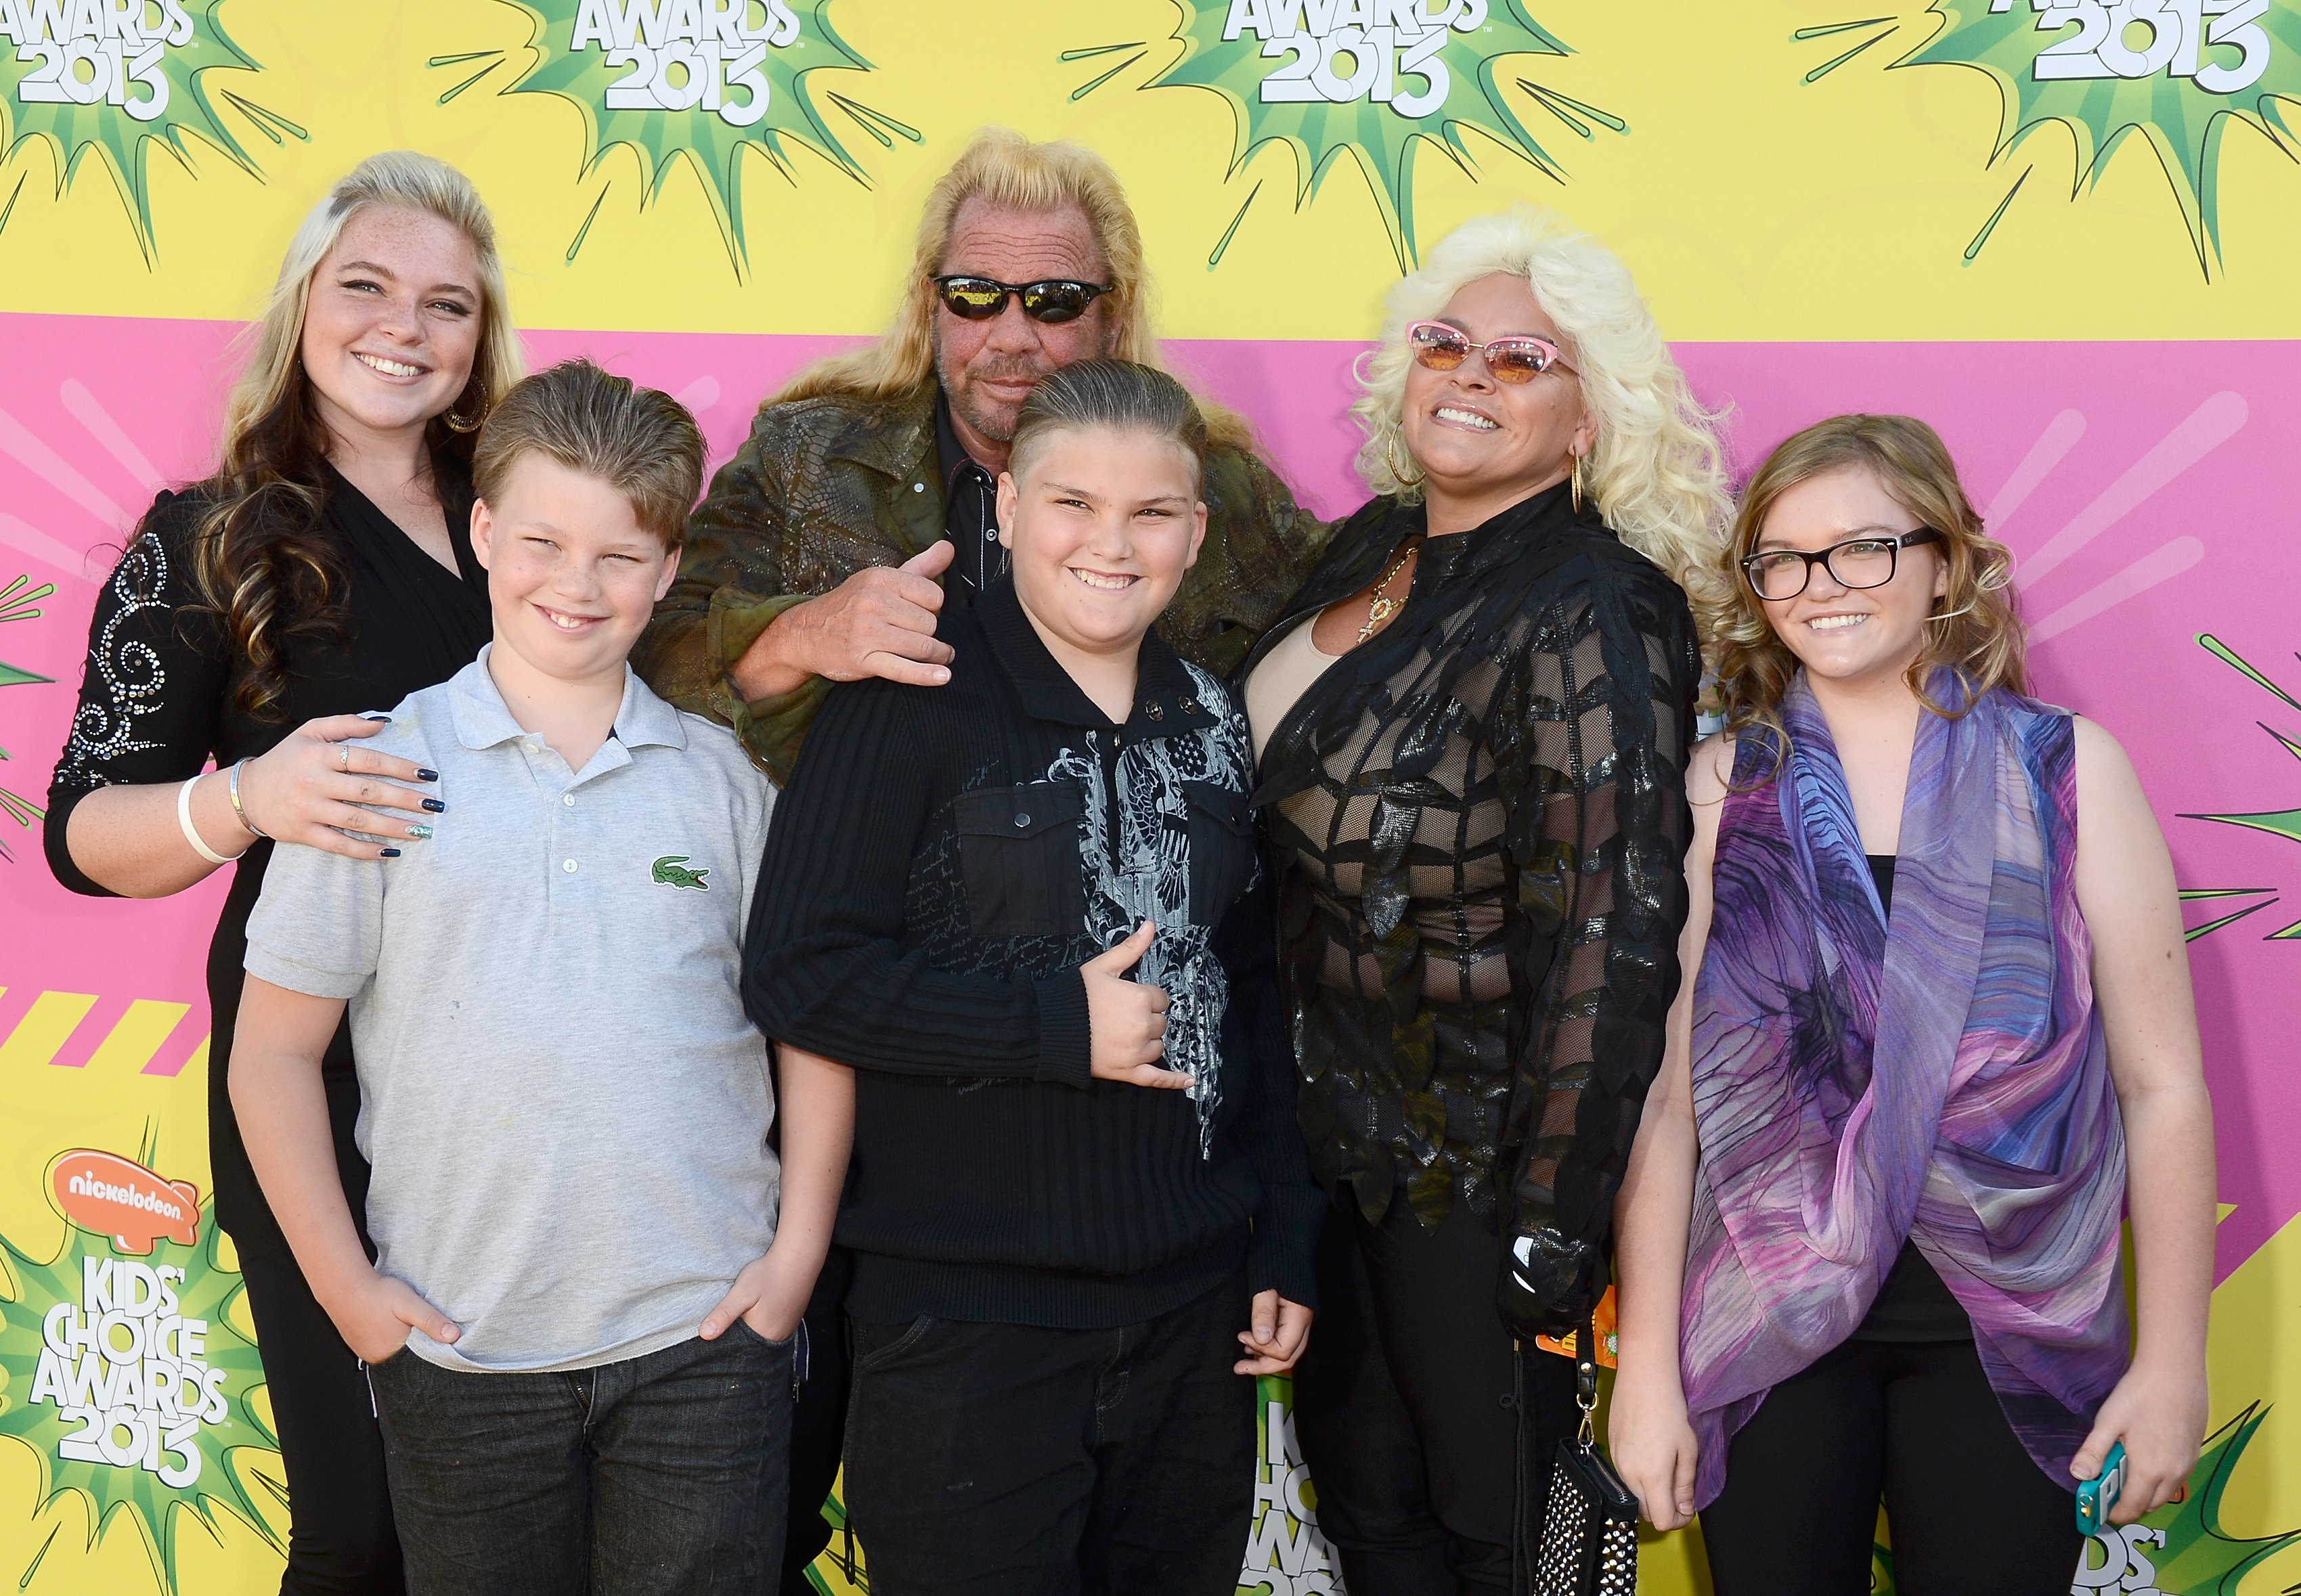 """Duane """"Dog"""" Chapman, Beth Chapman, and their family at Nickelodeon's 26th Annual Kids' Choice Awards at USC Galen Center on March 23, 2013 in Los Angeles, California 